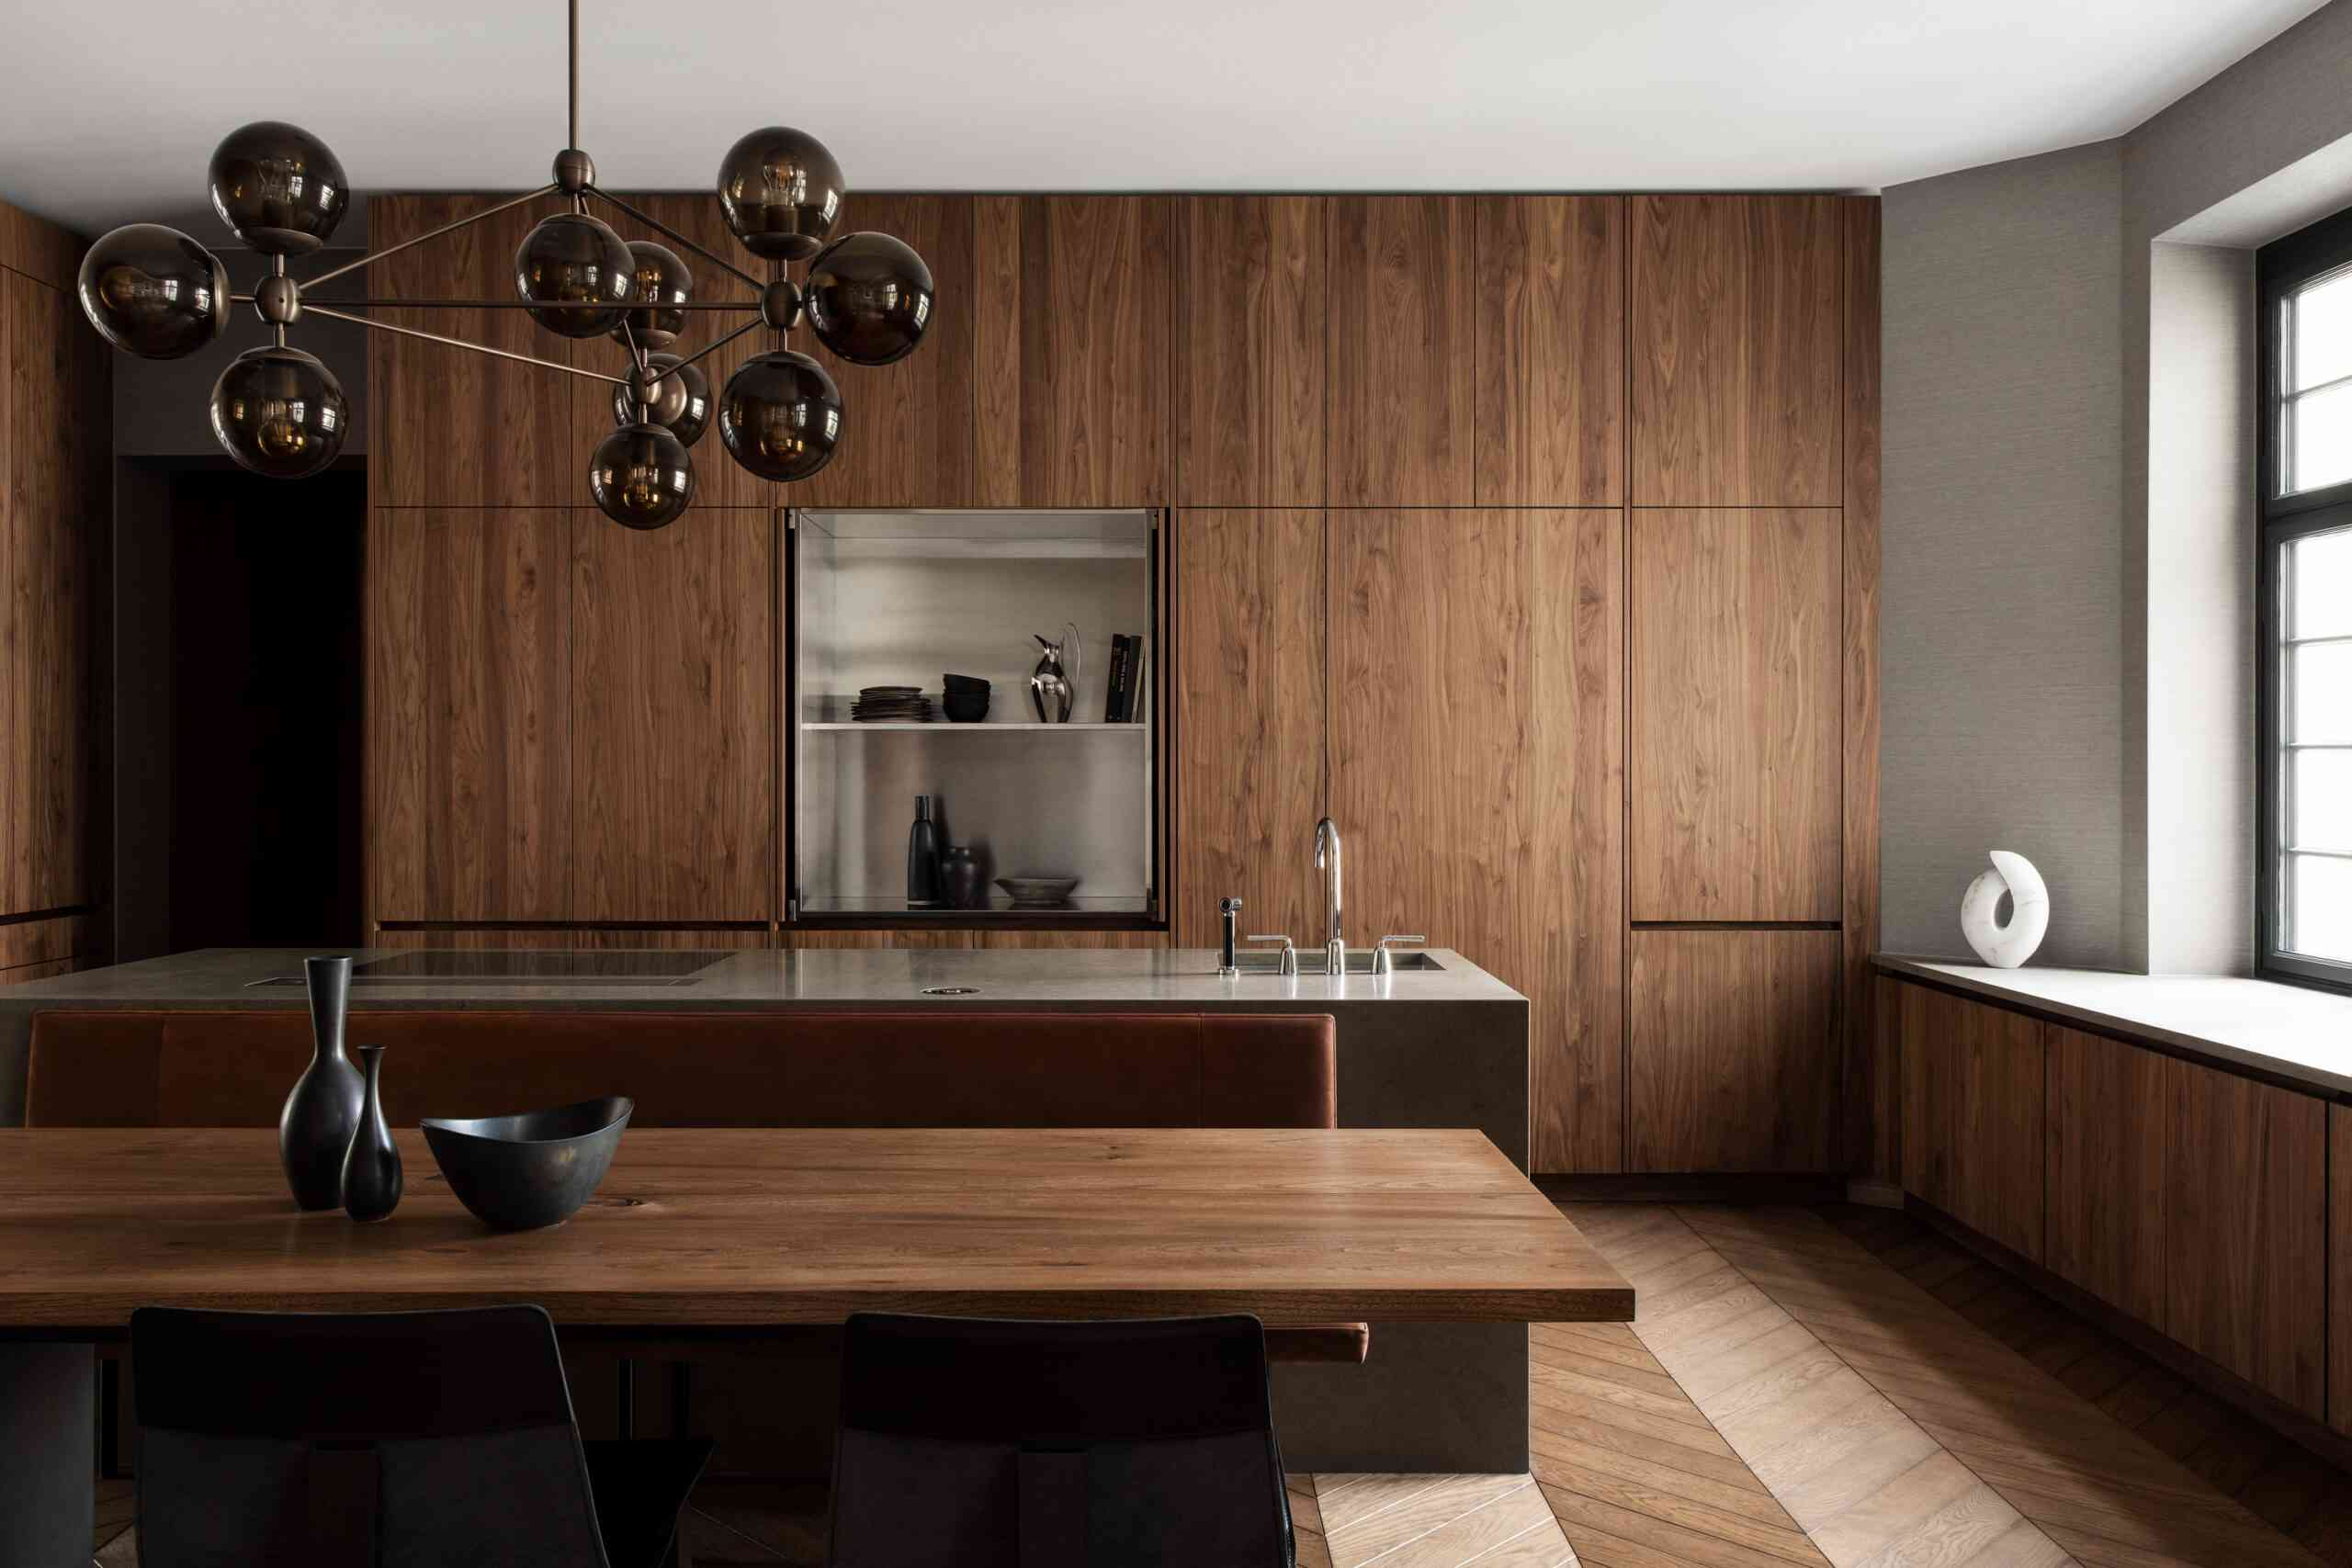 Kitchen with floor-to-ceiling wood cabinets